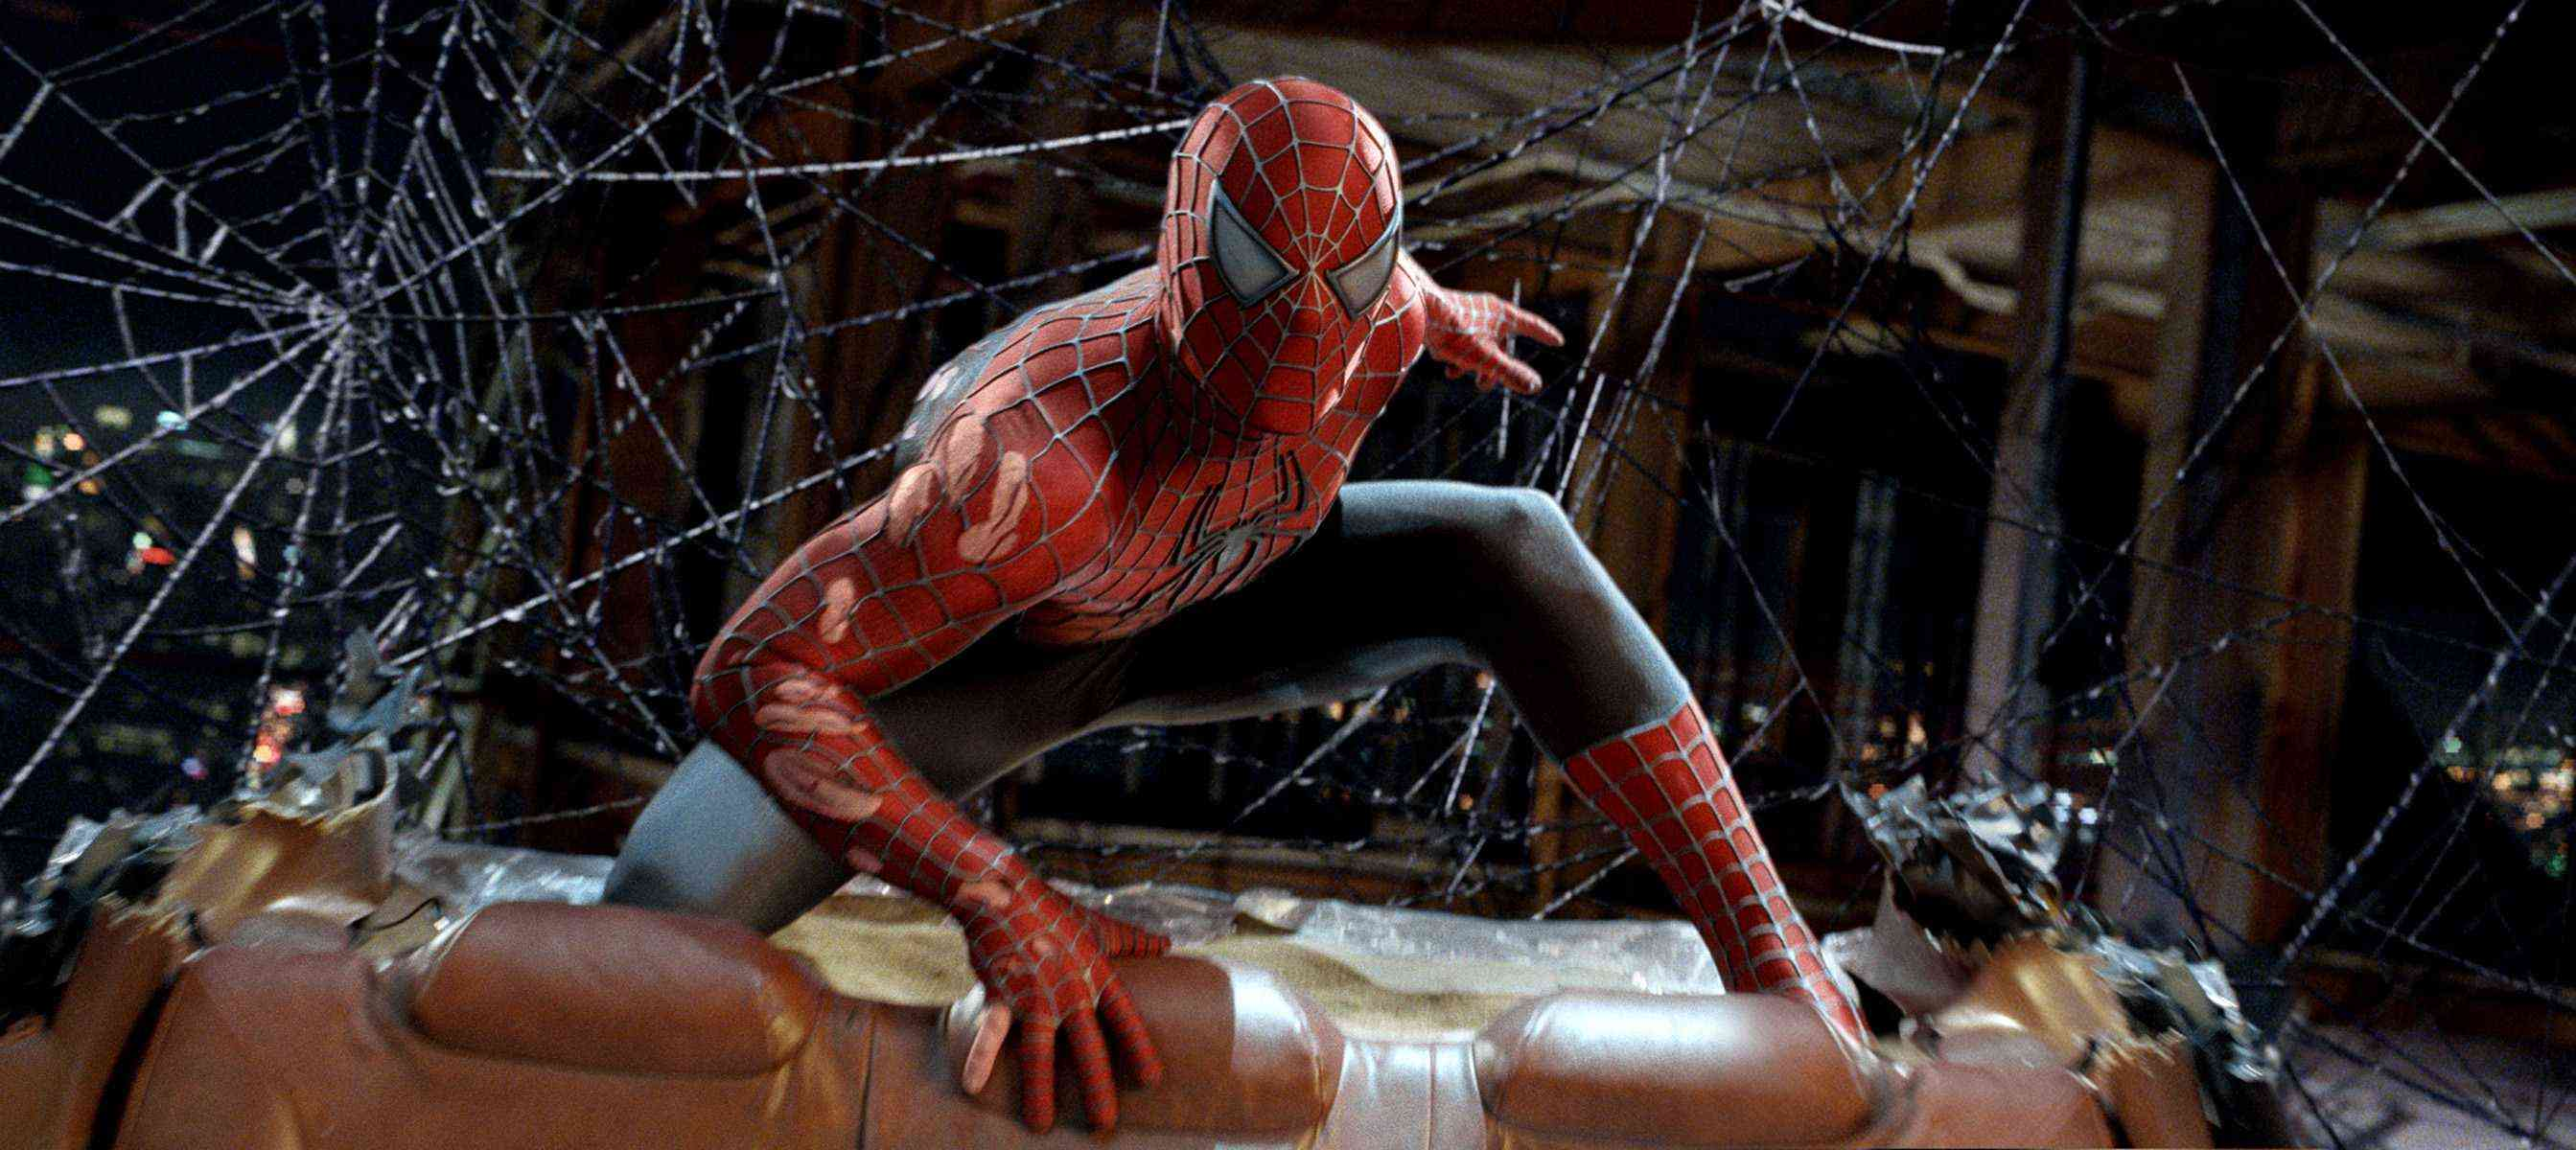 spider man 3 free comic book saturday kpbs. Black Bedroom Furniture Sets. Home Design Ideas